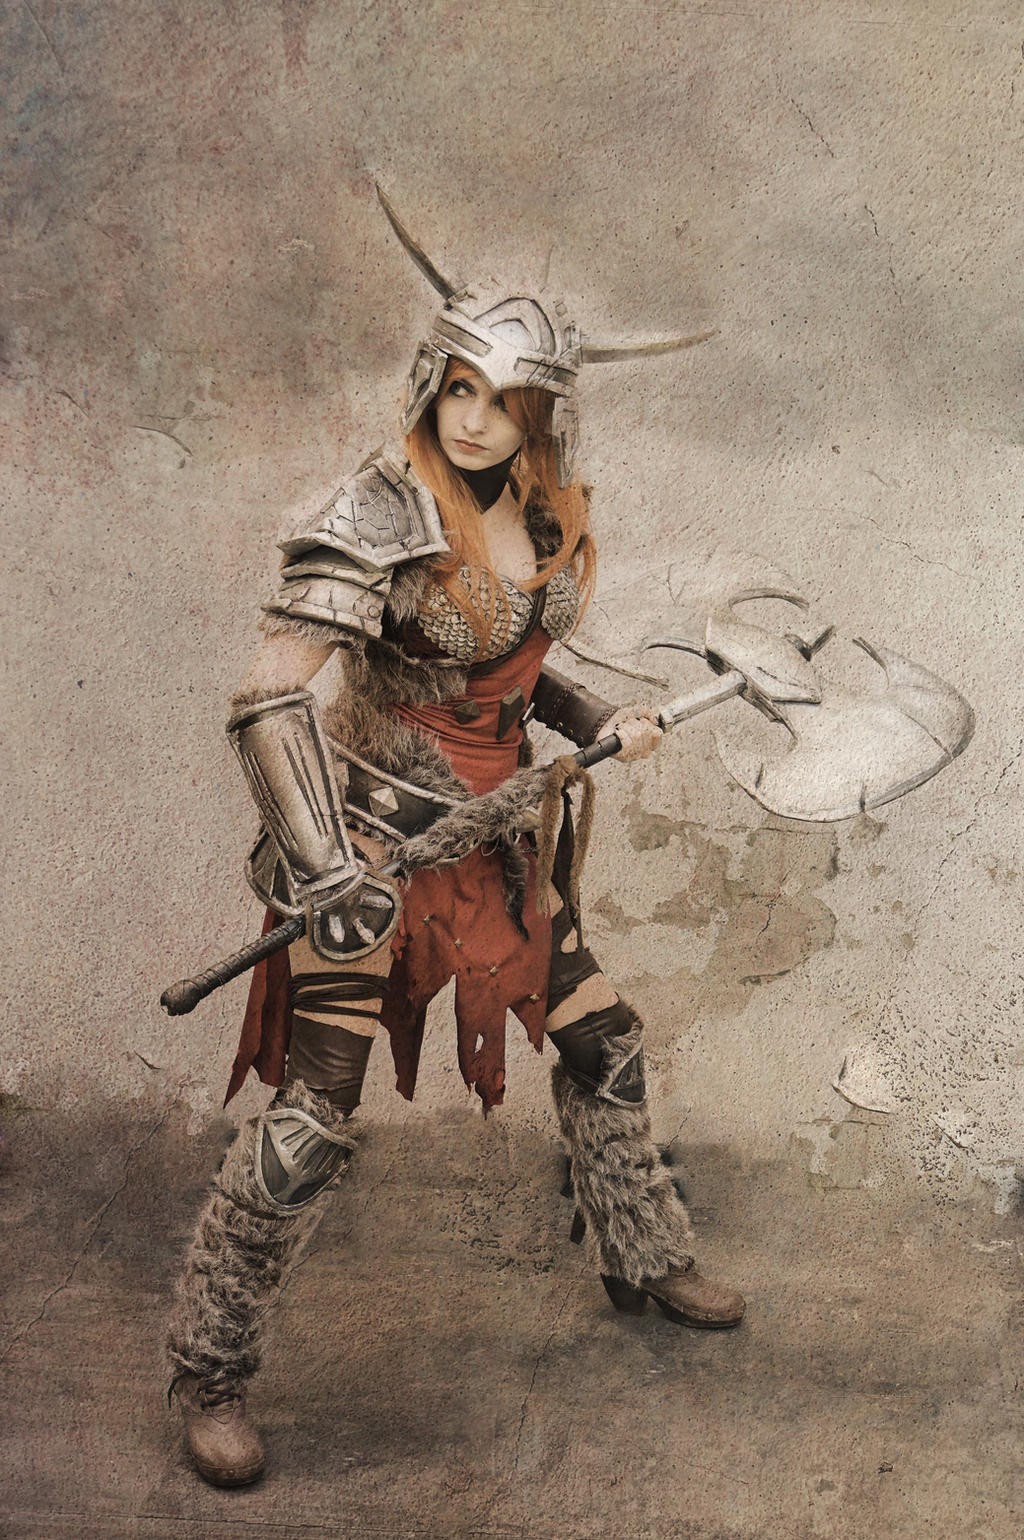 barbarian diablo 3 armor - photo #13